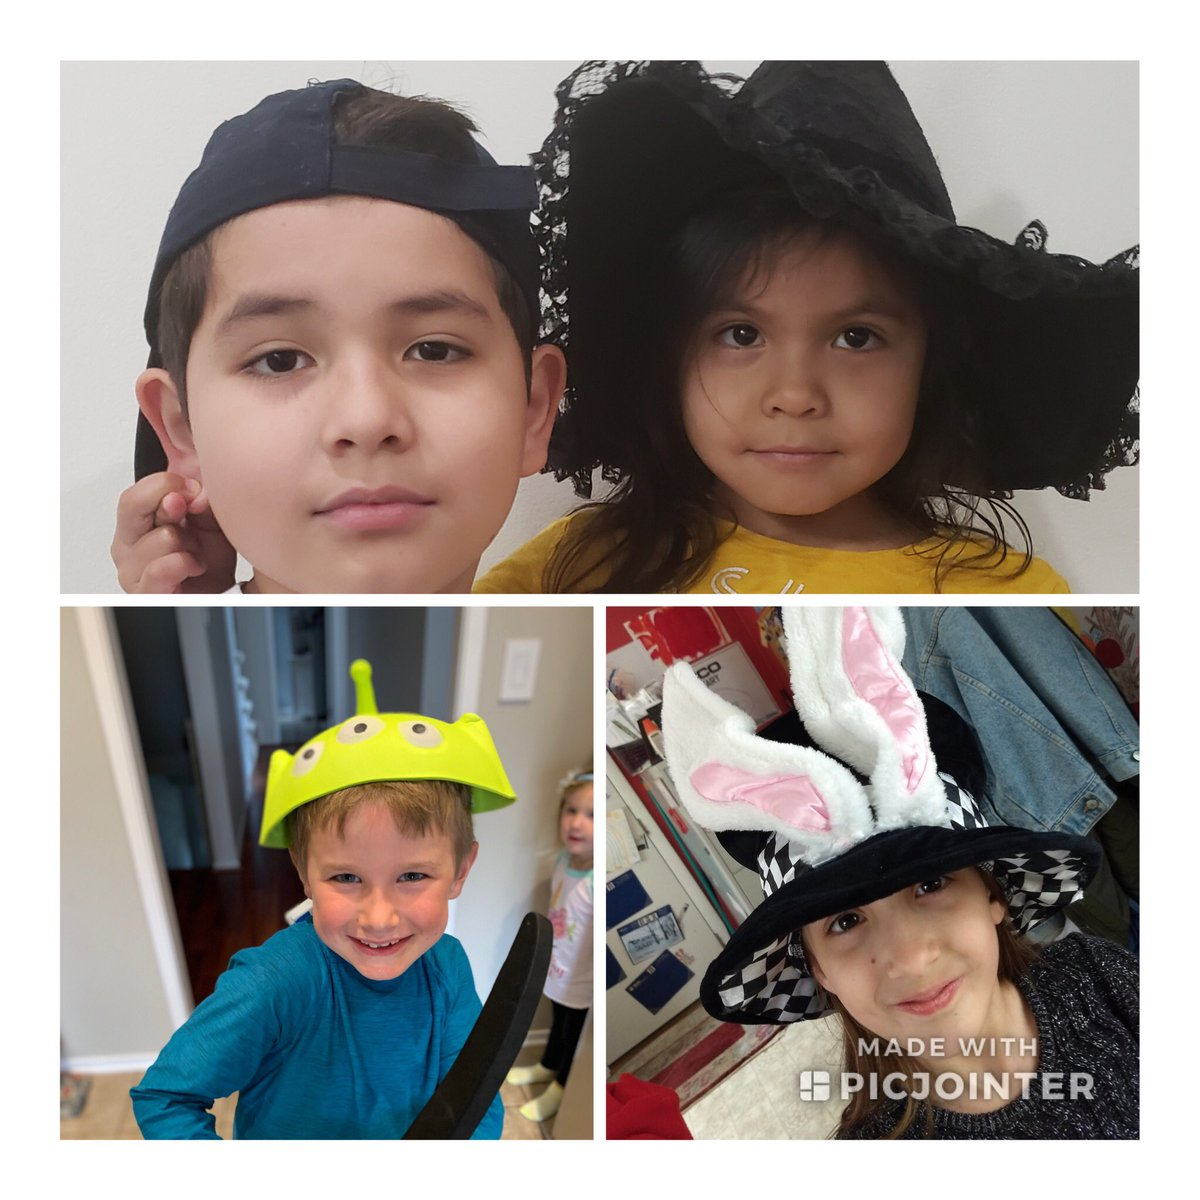 Virtual Hat day at Glebe with Glebers and folks from APS Central Office! Thank you all for joining our spirit!<a target='_blank' href='http://twitter.com/glebepta'>@glebepta</a> <a target='_blank' href='http://twitter.com/APSVirginia'>@APSVirginia</a> <a target='_blank' href='http://search.twitter.com/search?q=GlebeEagles'><a target='_blank' href='https://twitter.com/hashtag/GlebeEagles?src=hash'>#GlebeEagles</a></a> <a target='_blank' href='https://t.co/VjGt7NE6PV'>https://t.co/VjGt7NE6PV</a>